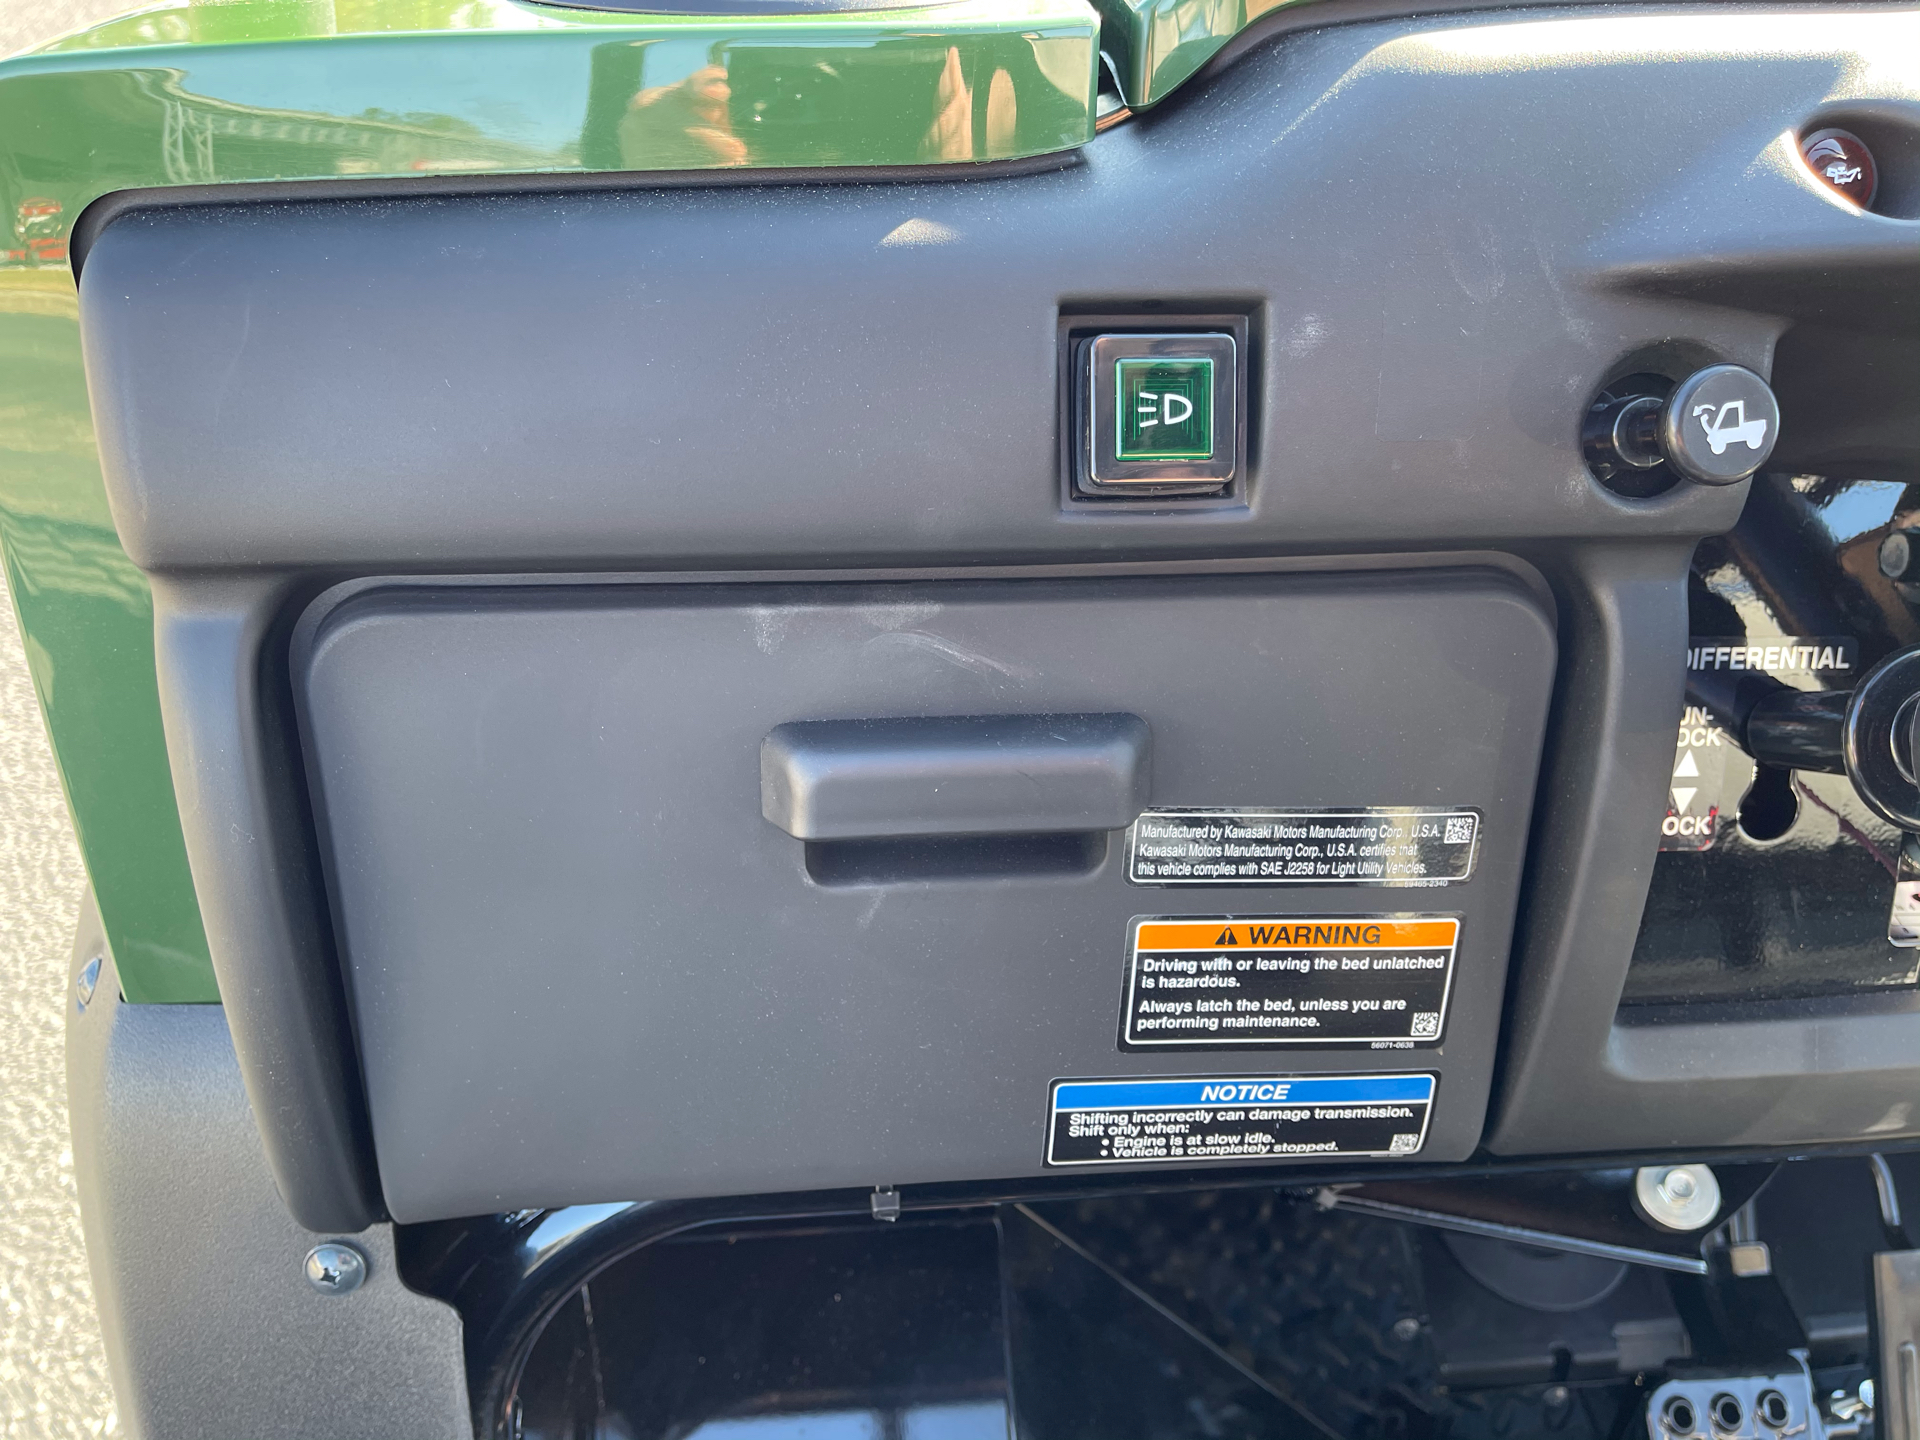 2021 Kawasaki Mule 4010 4x4 in Greenville, North Carolina - Photo 14